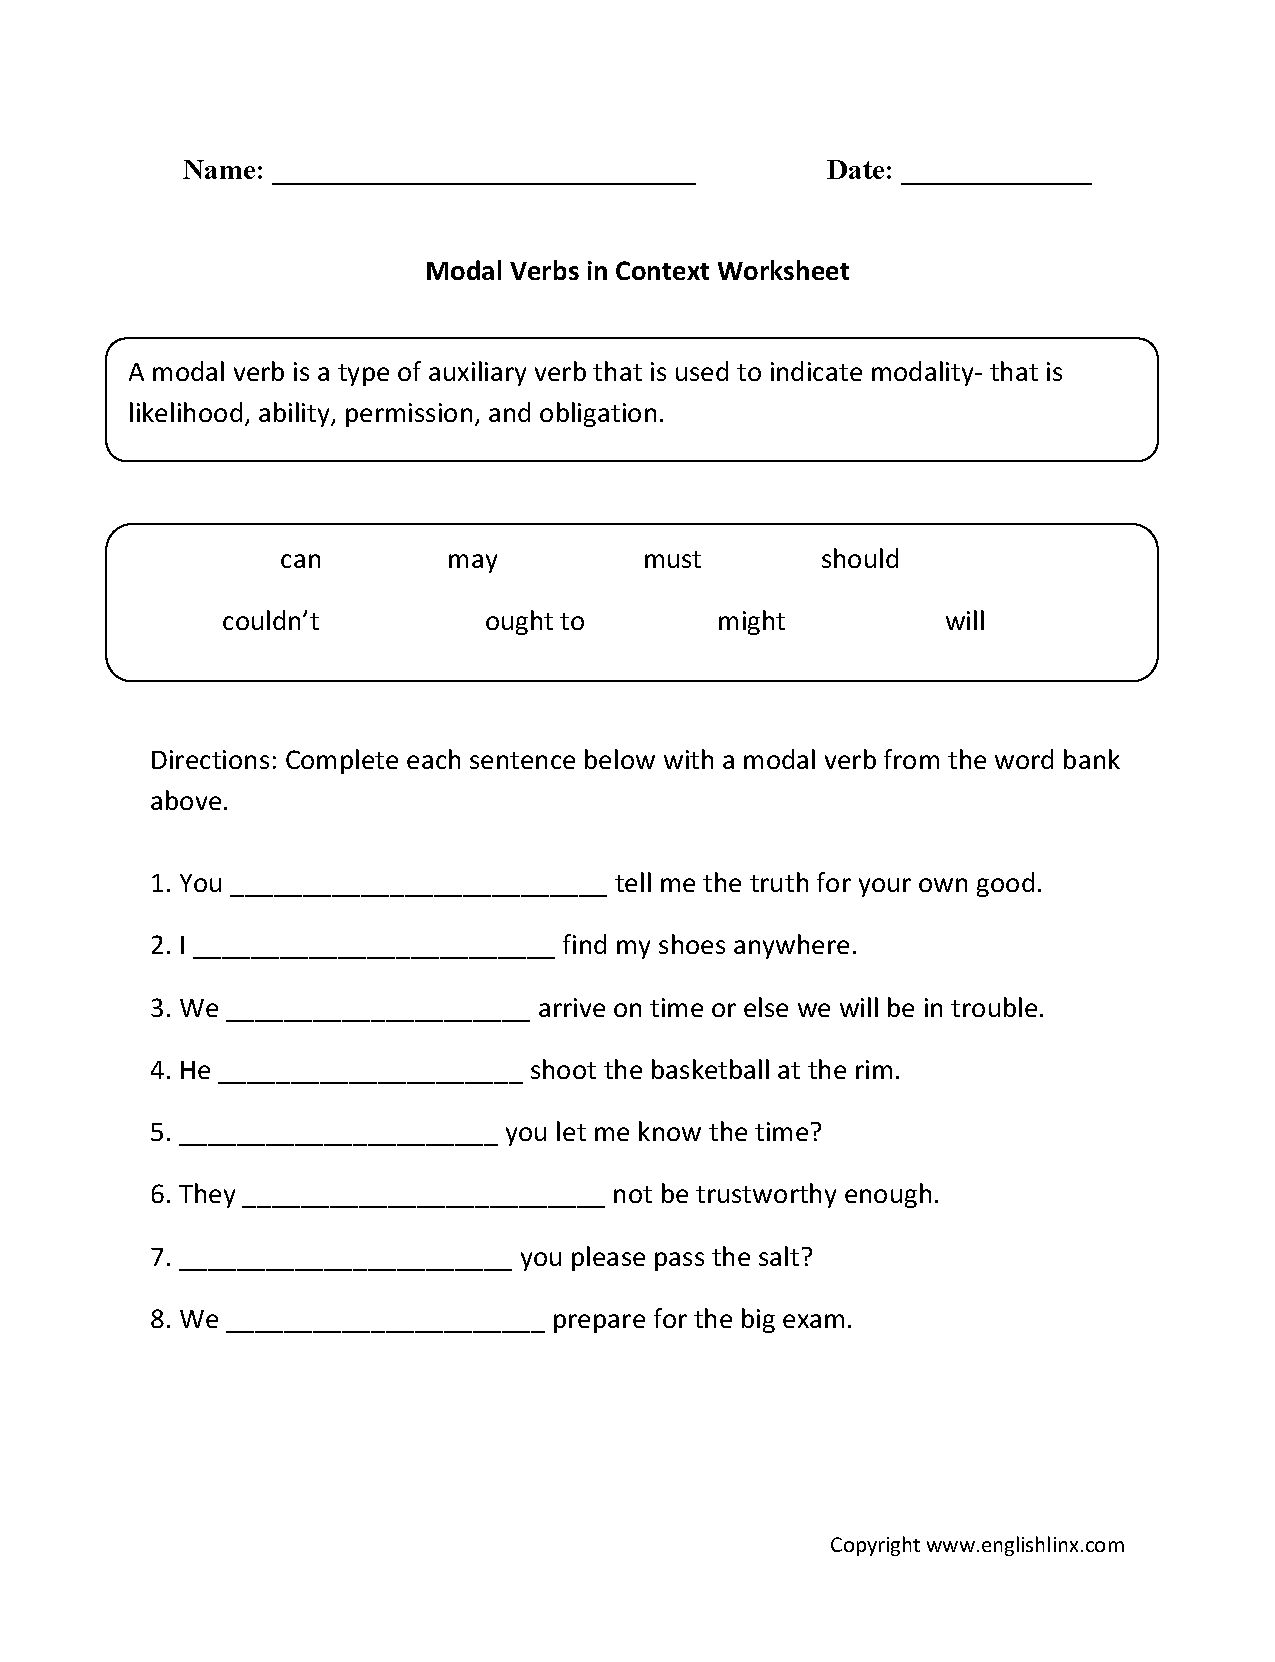 Modal Verbs Ks2 Worksheet